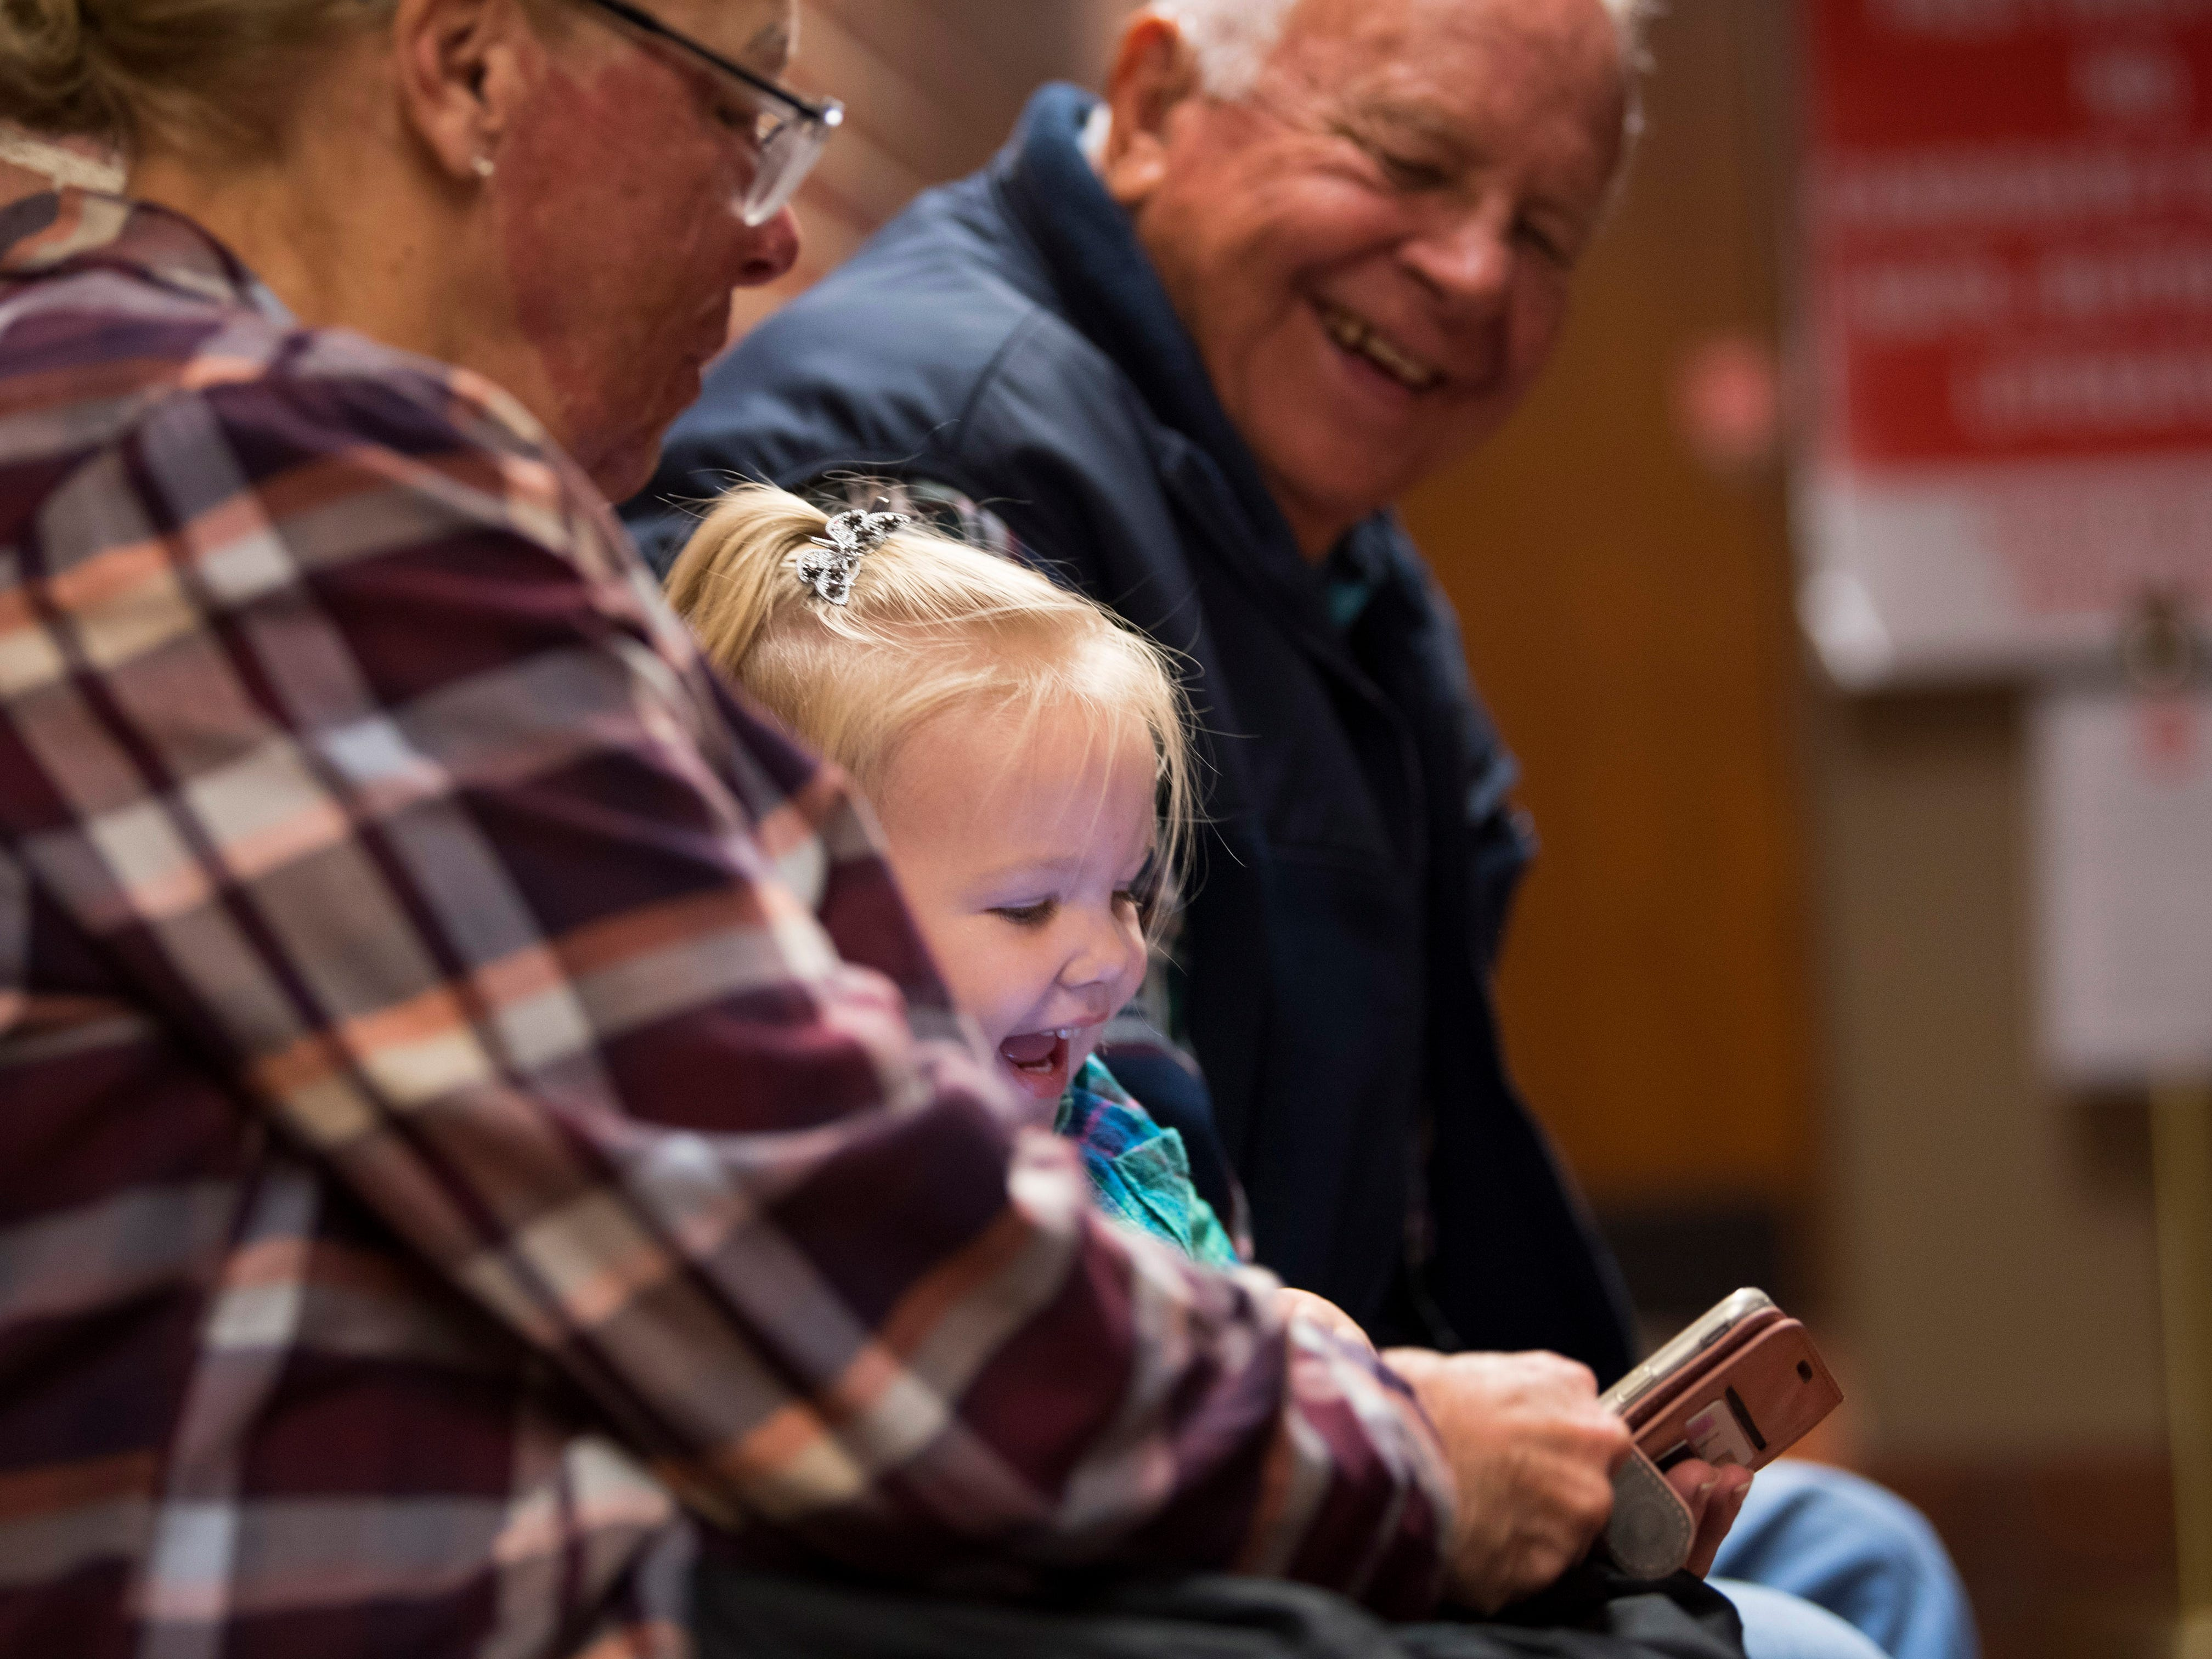 """Ella Lomax, 2, stays entertained by watching kid videos with her grandmother, Cindy Reich, left, and great grandfather Charles Riley at the Vanderburgh County Civic Center Monday. The adults were waiting to get their early votes in while Ella was happy to sing along with """"Baby Shark"""" and the """"Gummy Bear Show."""""""